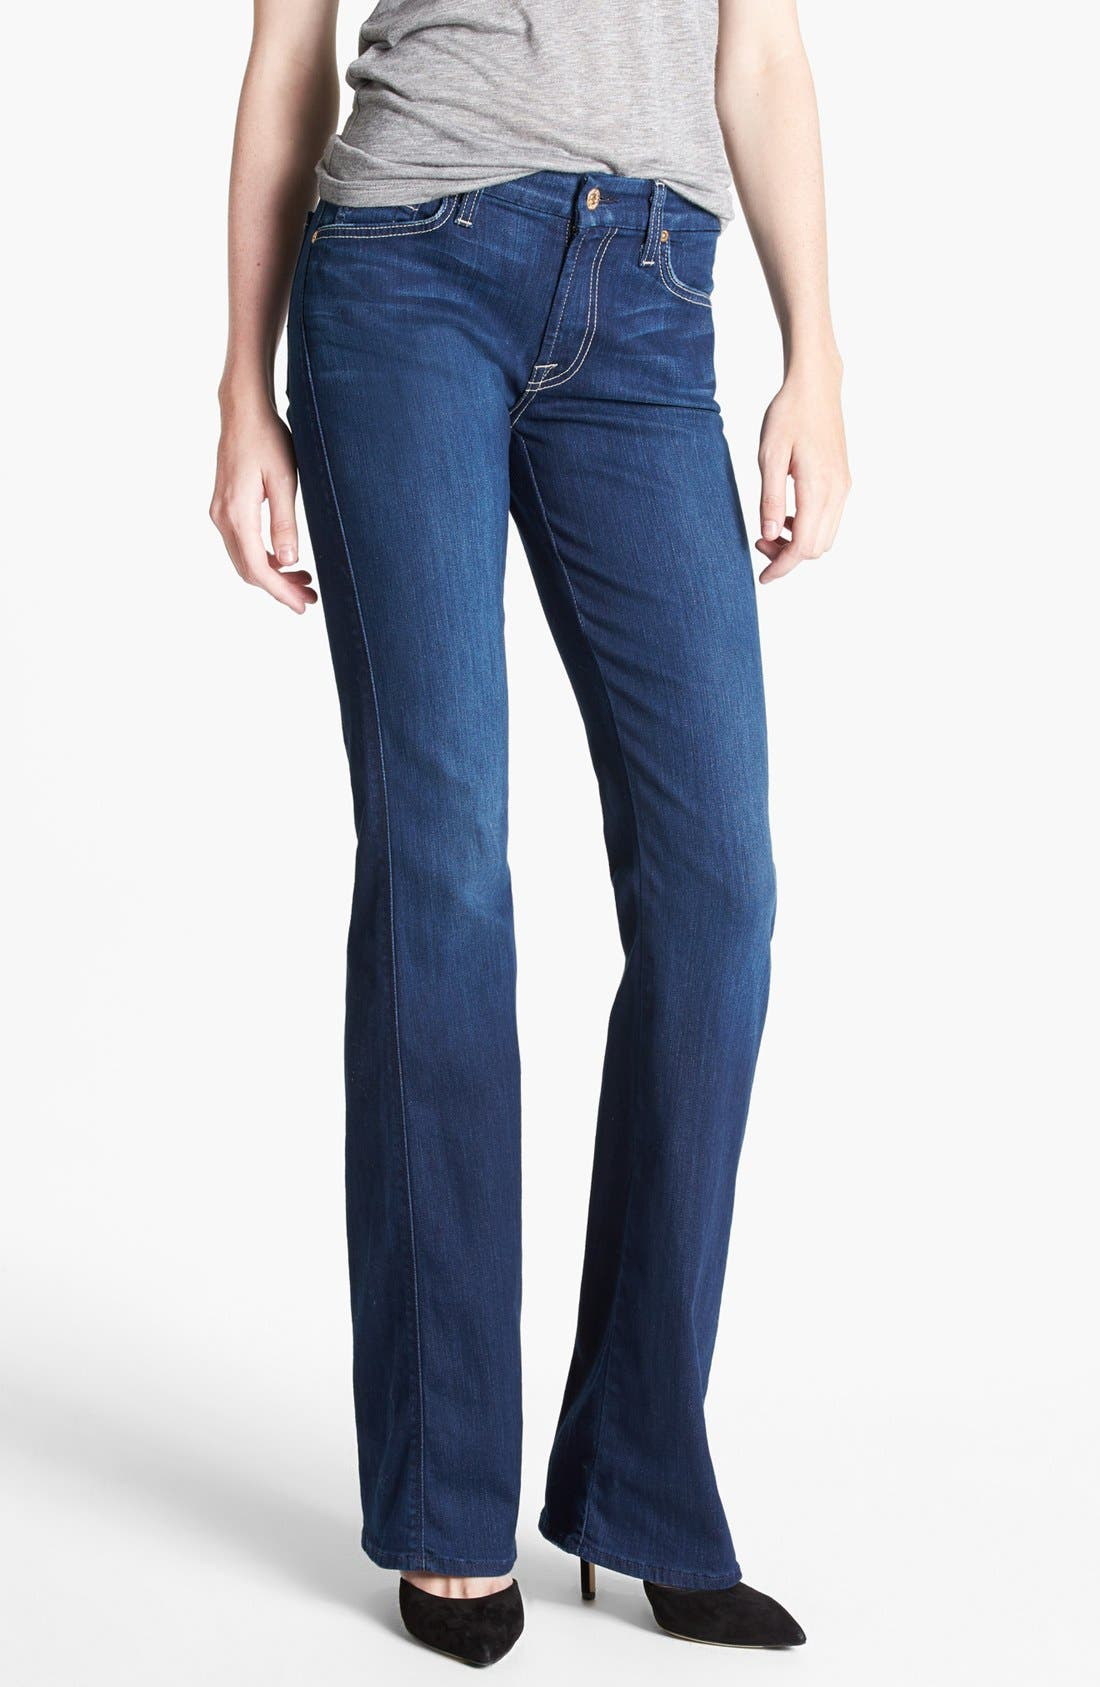 Alternate Image 1 Selected - 7 For All Mankind® 'Kimmie' Bootcut Jeans (Vixen Sky)